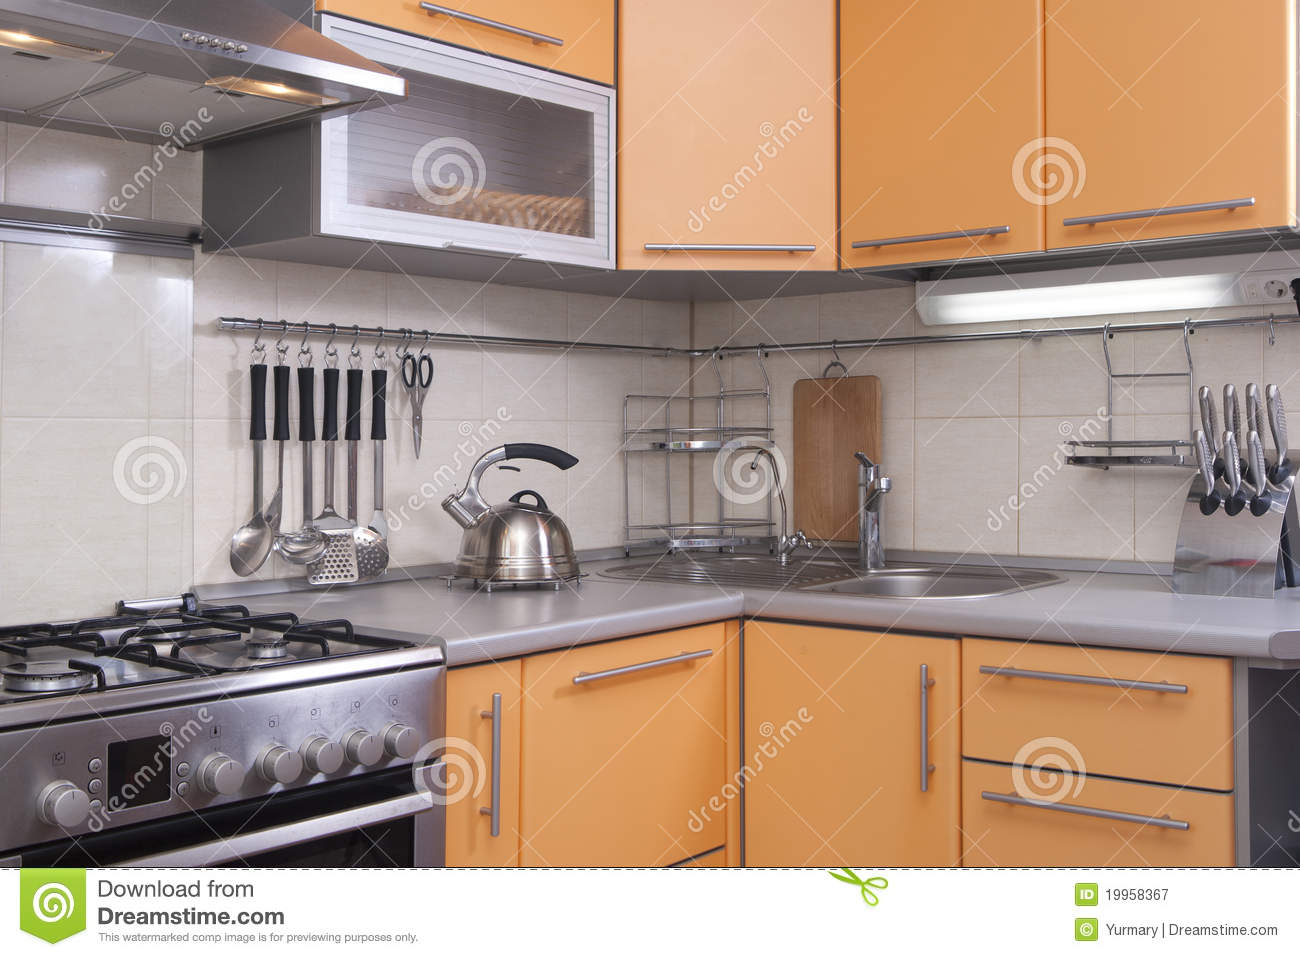 Modern Kitchen In Shades Of Peach Royalty Free Stock Photography